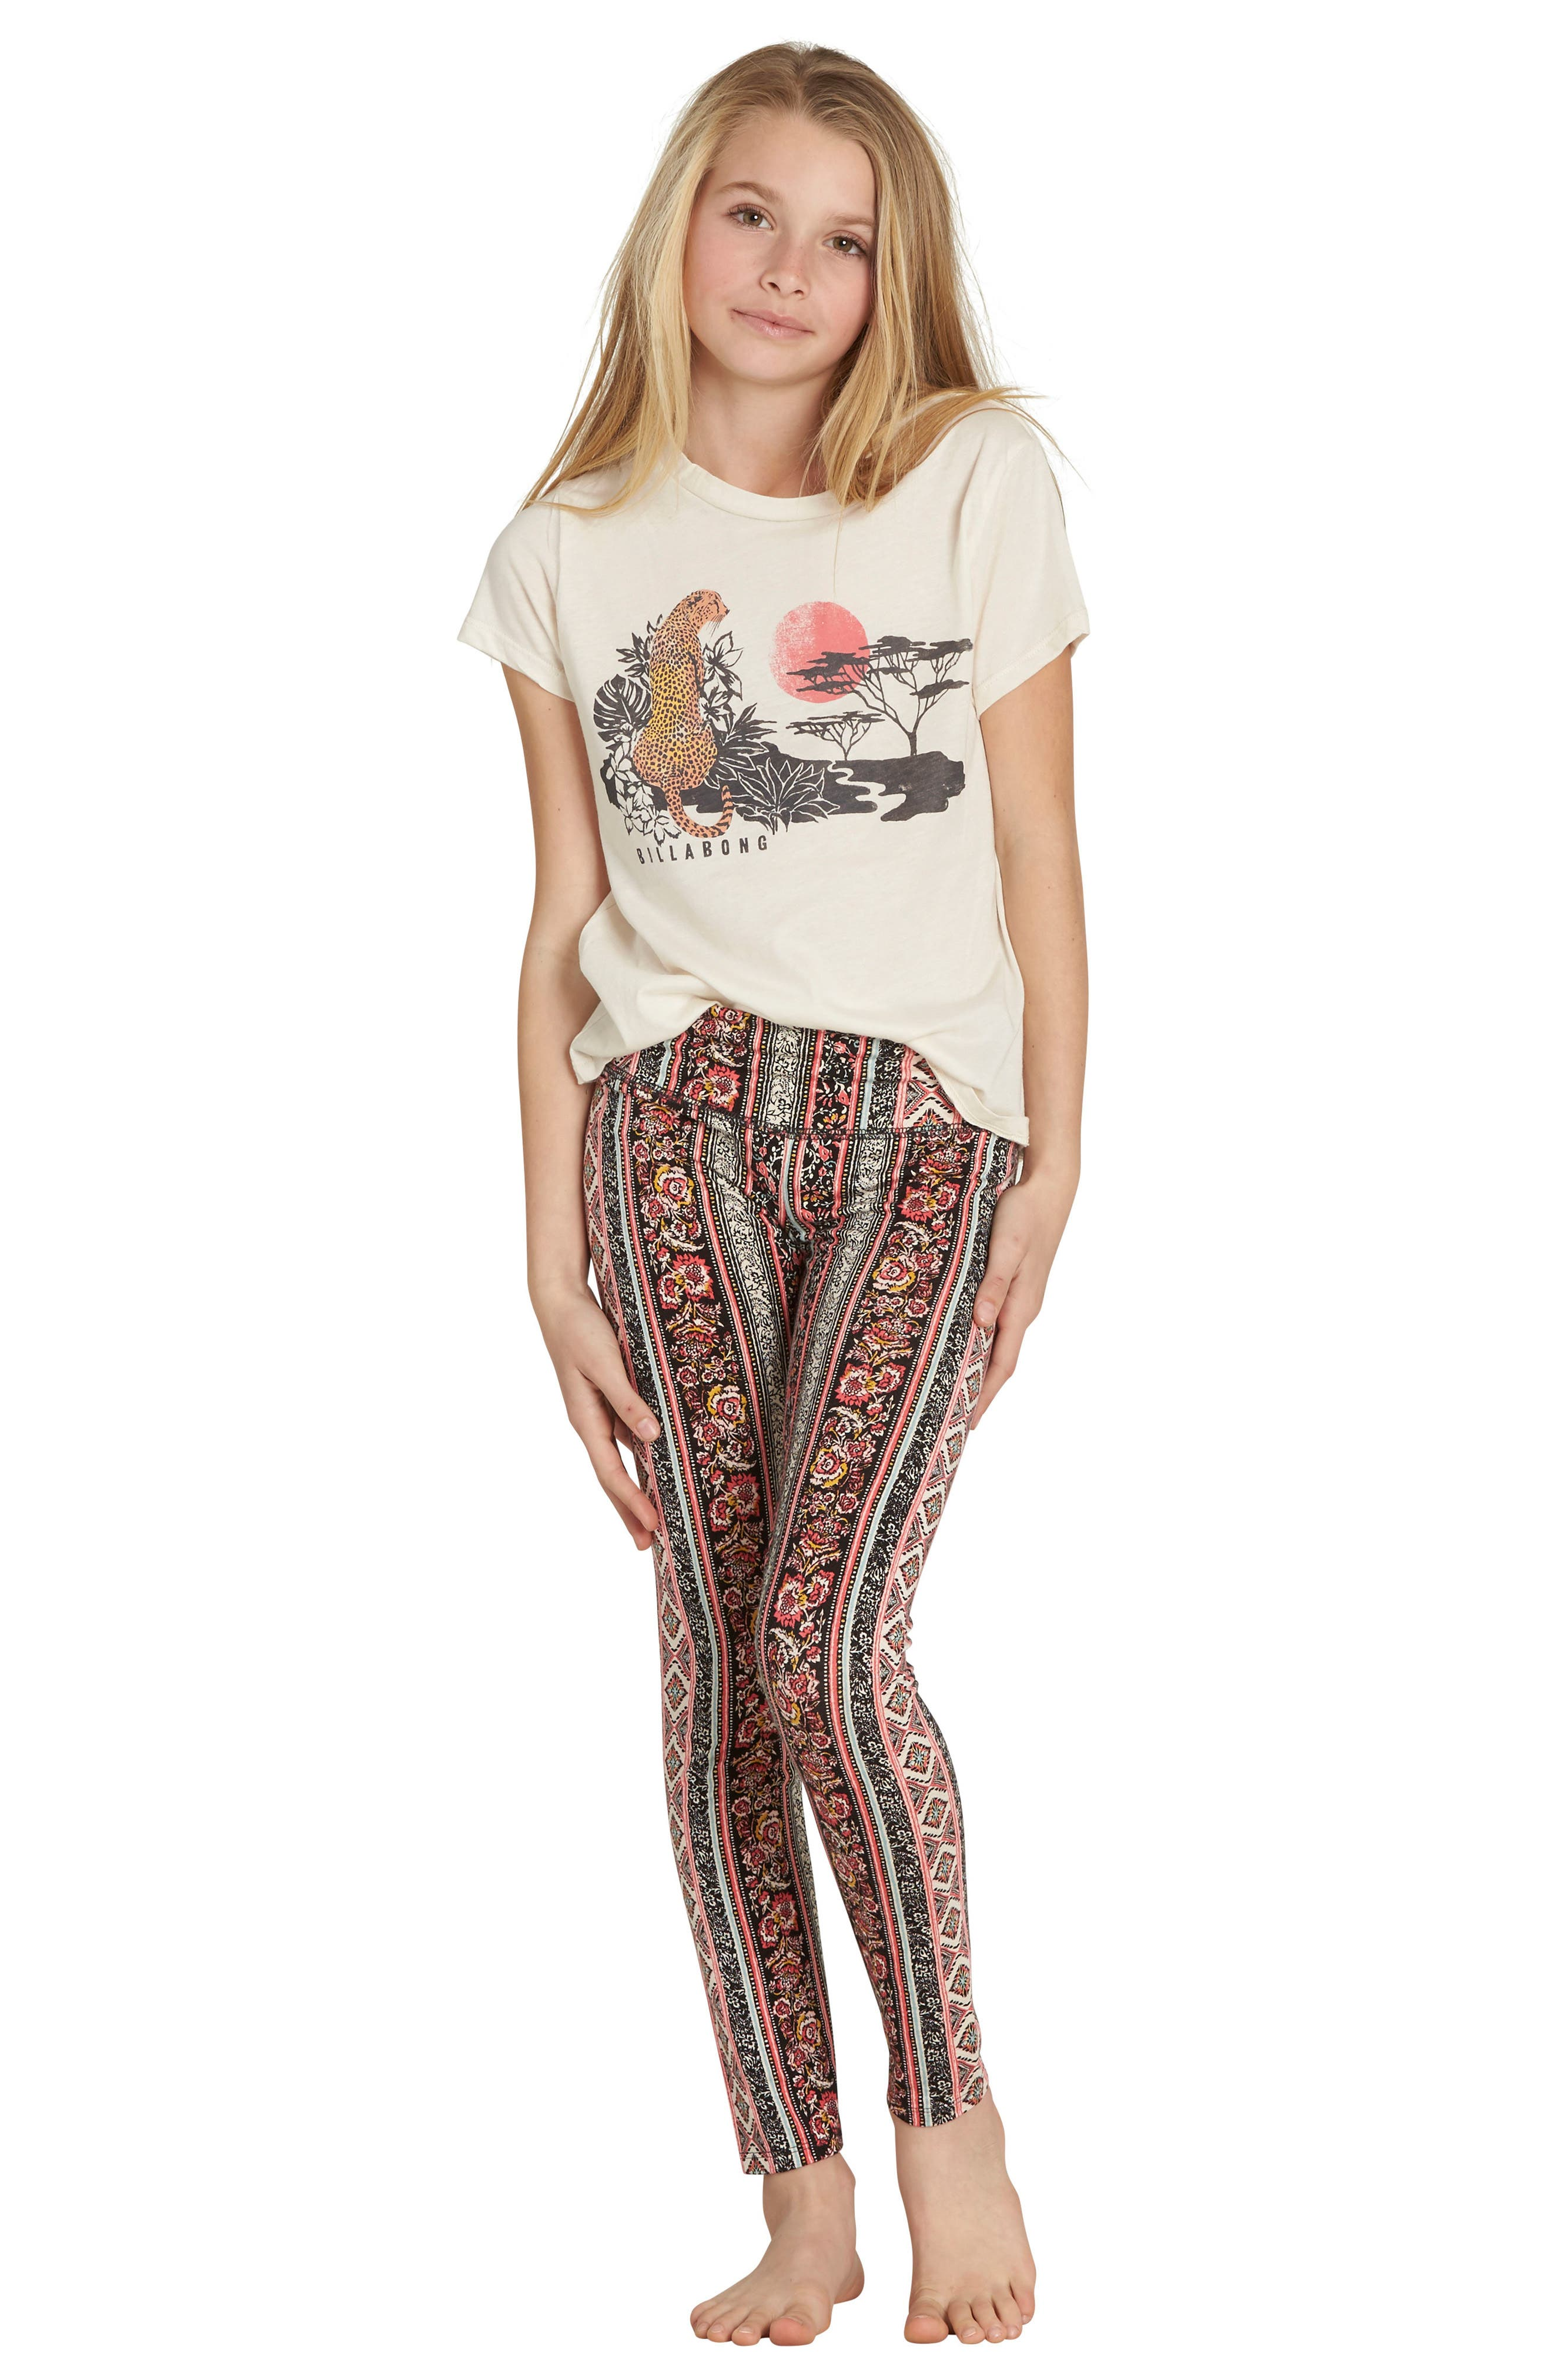 Alternate Image 1 Selected - Billabong Face the Gloom Graphic Tee (Little Girls & Big Girls)